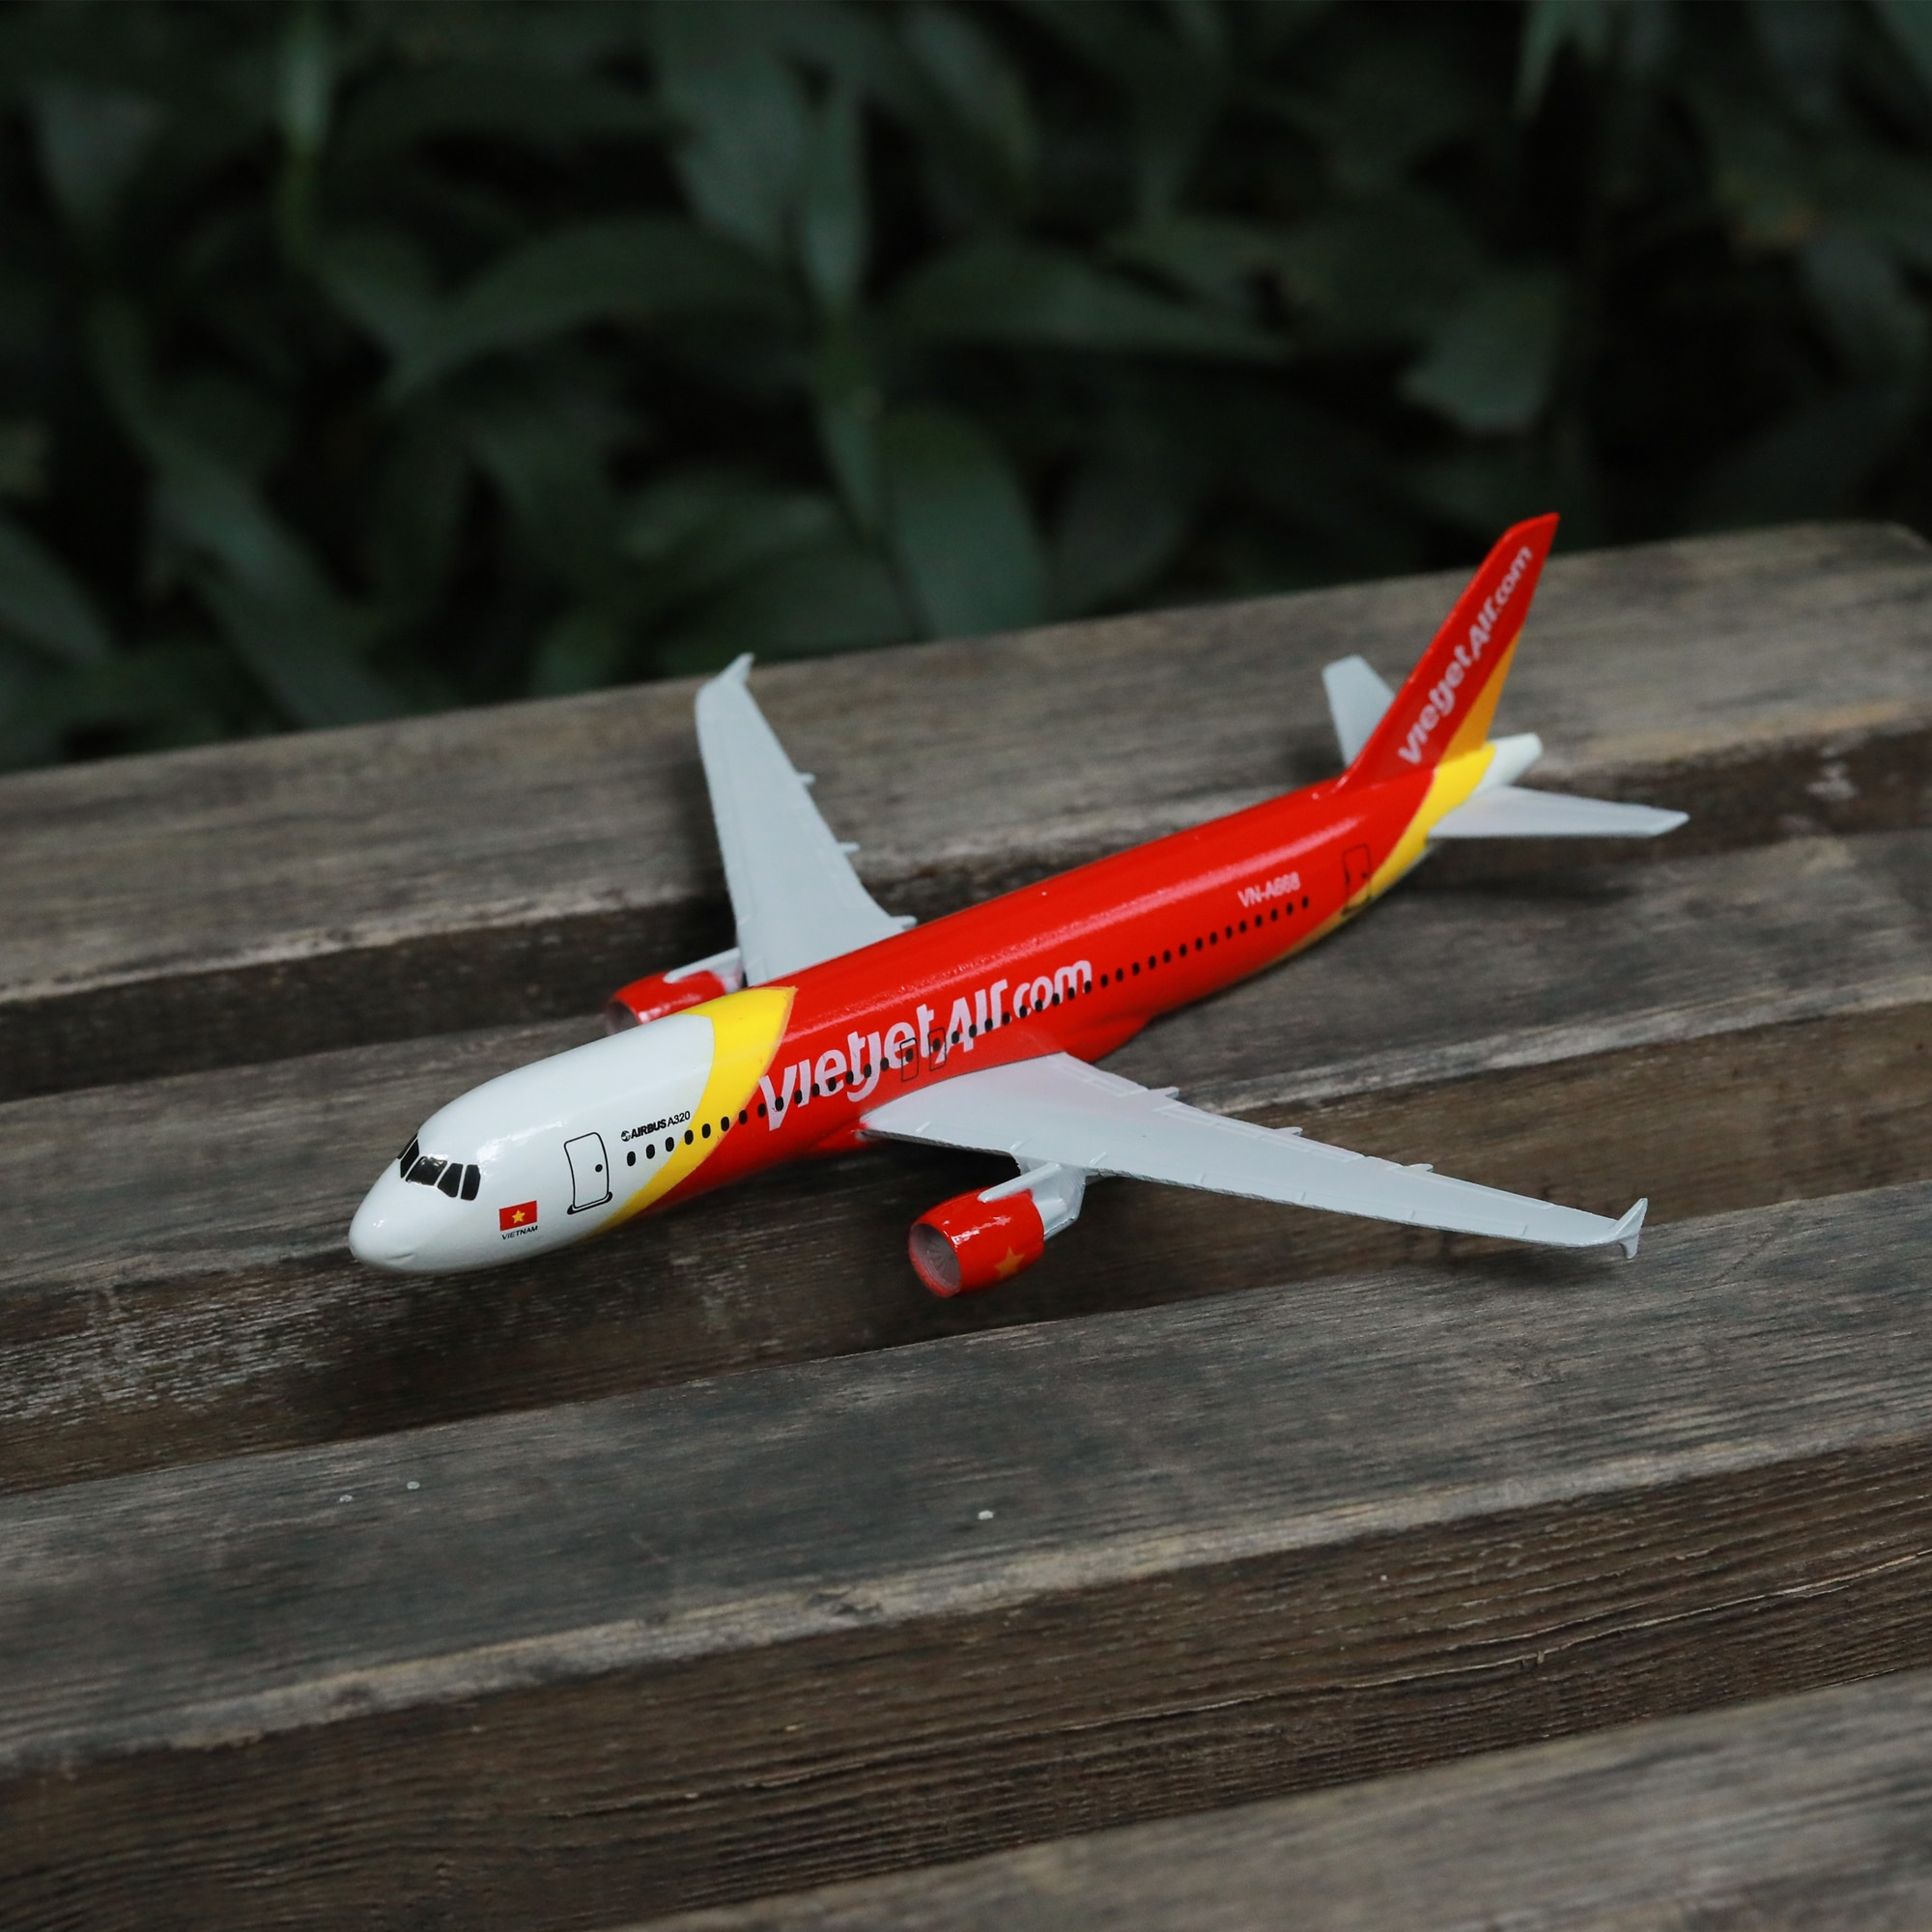 Vietnam Airlines 320 Airplane Diecast Aircraft Model 6 Metal Plane Aeroplane Home Office Decor Mini Moto Toys for Children air france a380 airplane diecast aircraft model 6 metal plane aeroplane home office decor mini moto toys for children